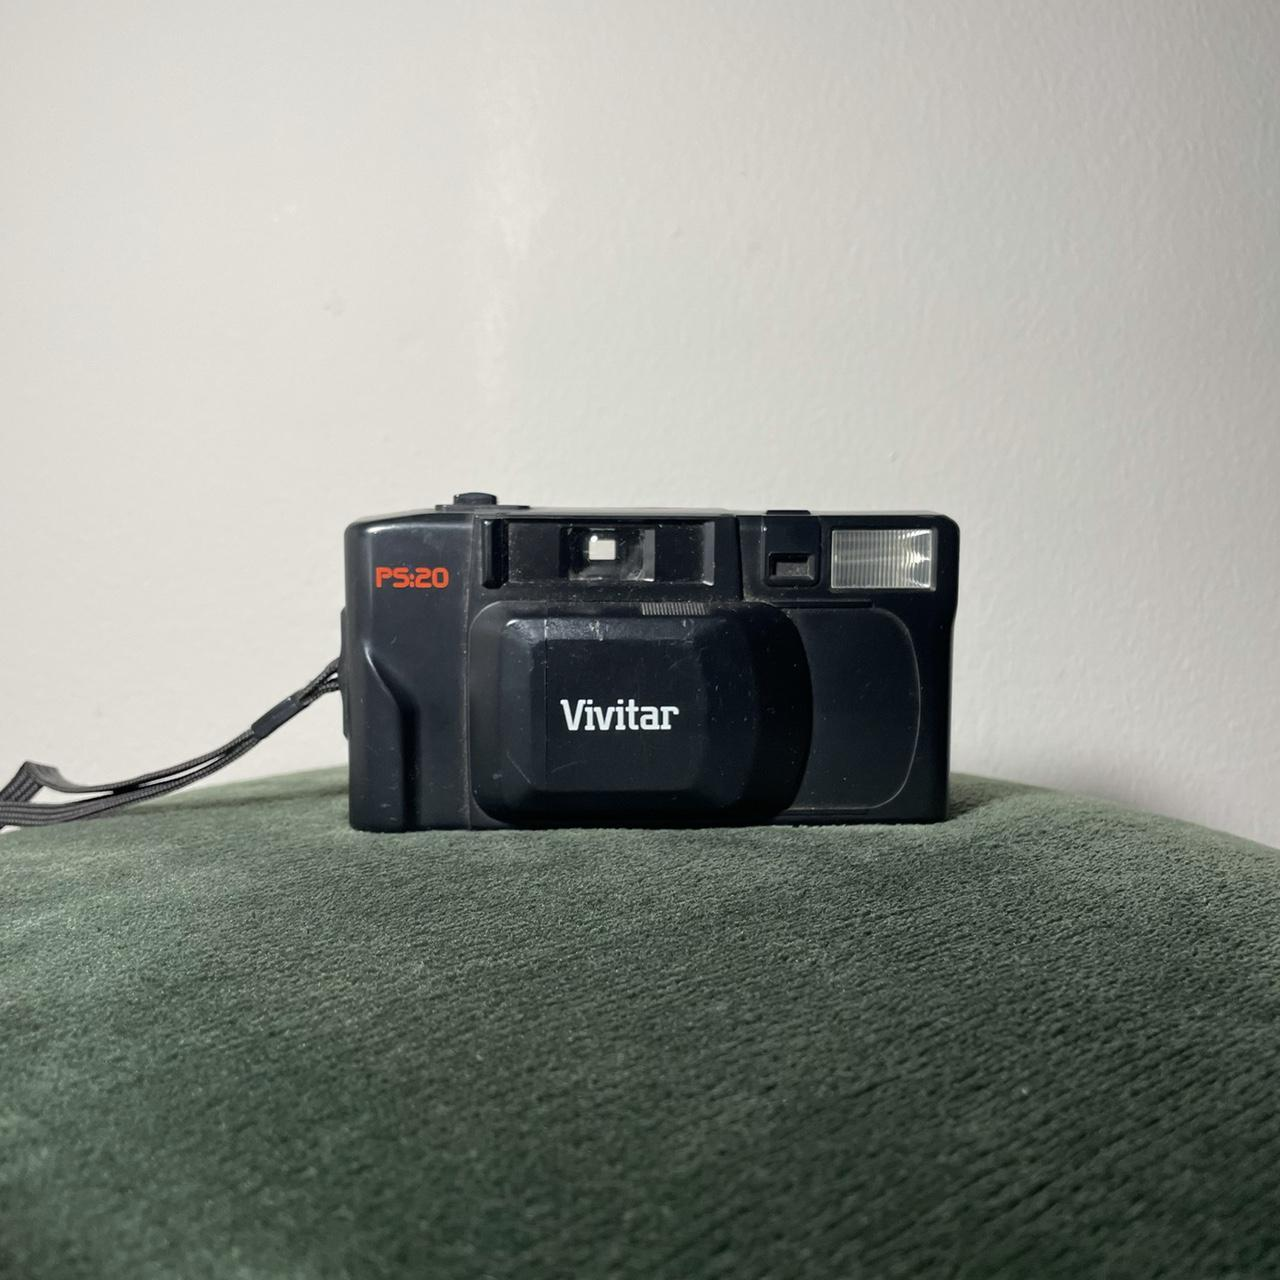 Product Image 1 - Vivitar PS:20 35mm Compact Film